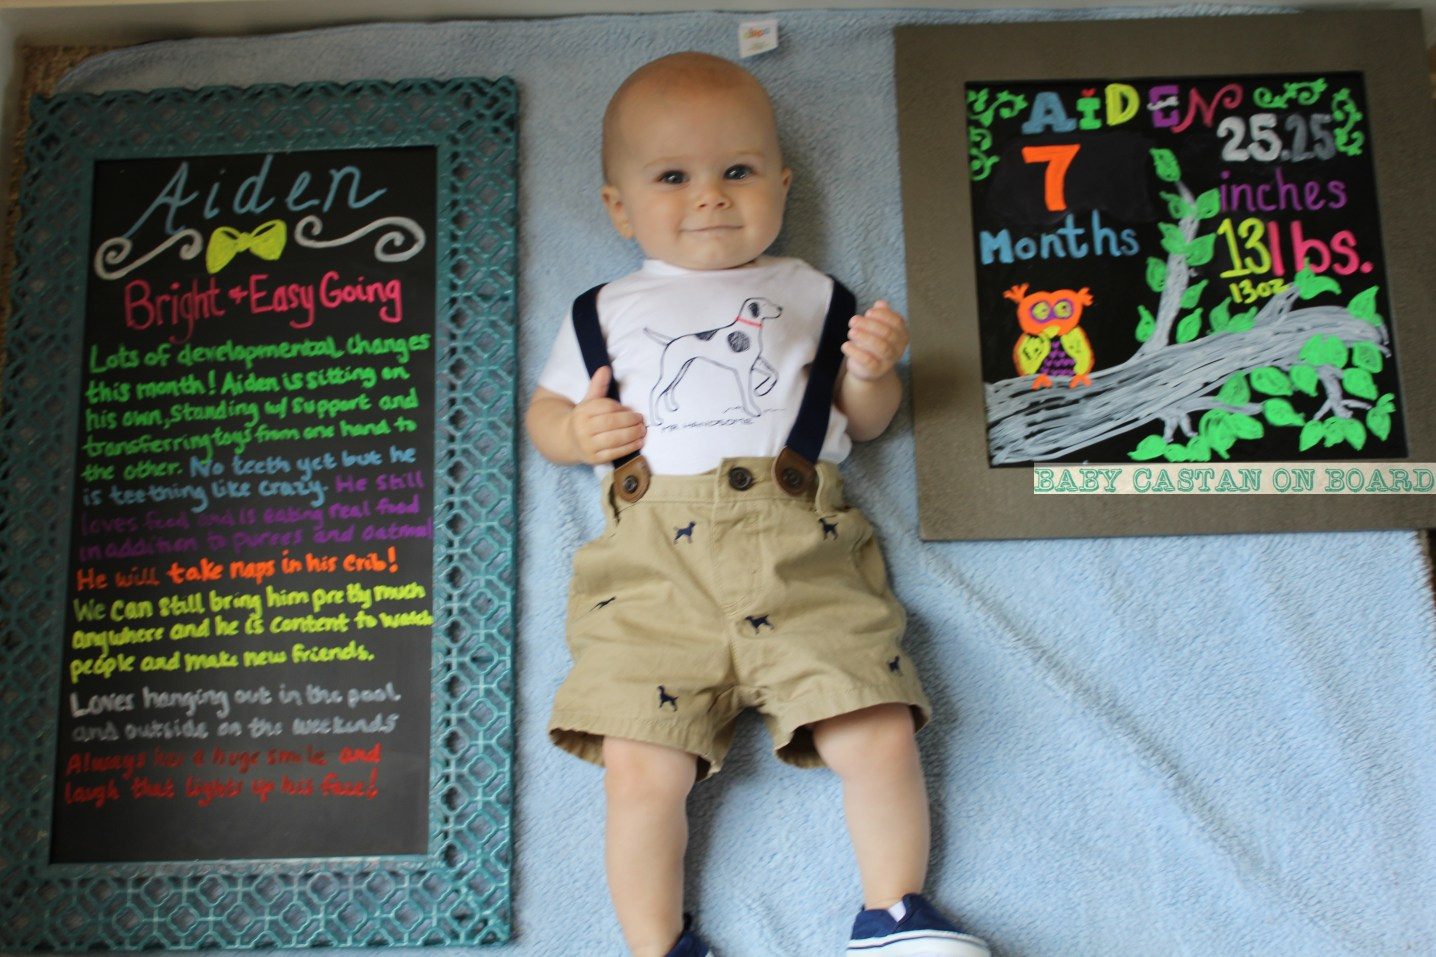 Monthly Milestone Photos for Baby featured by popular DC mommy blogger, Baby Castan on Board